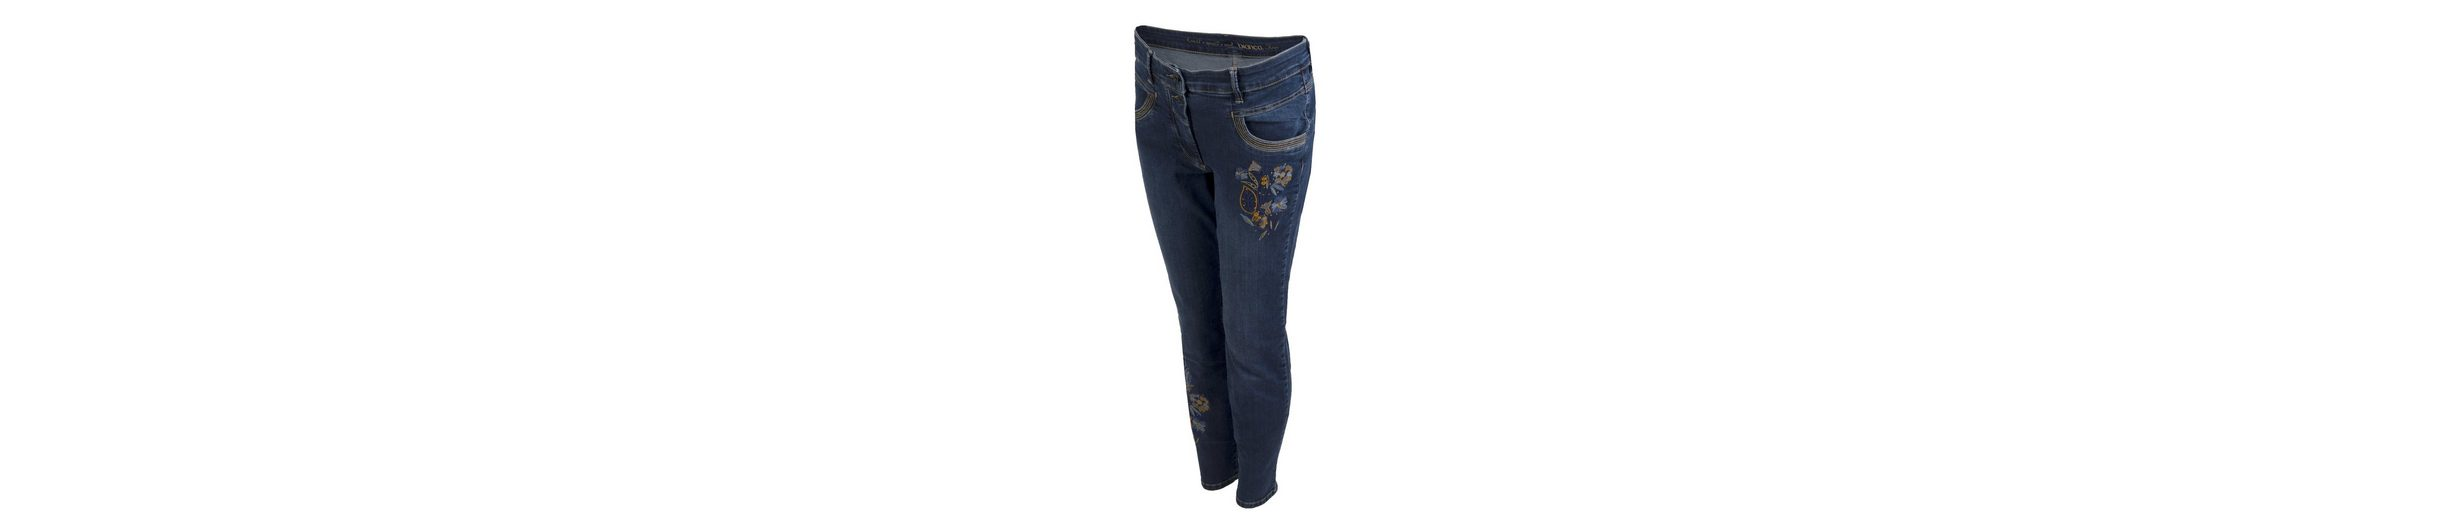 bianca 5-Pocket-Jeans SHAPE, schmale Jeans mit Stickerei